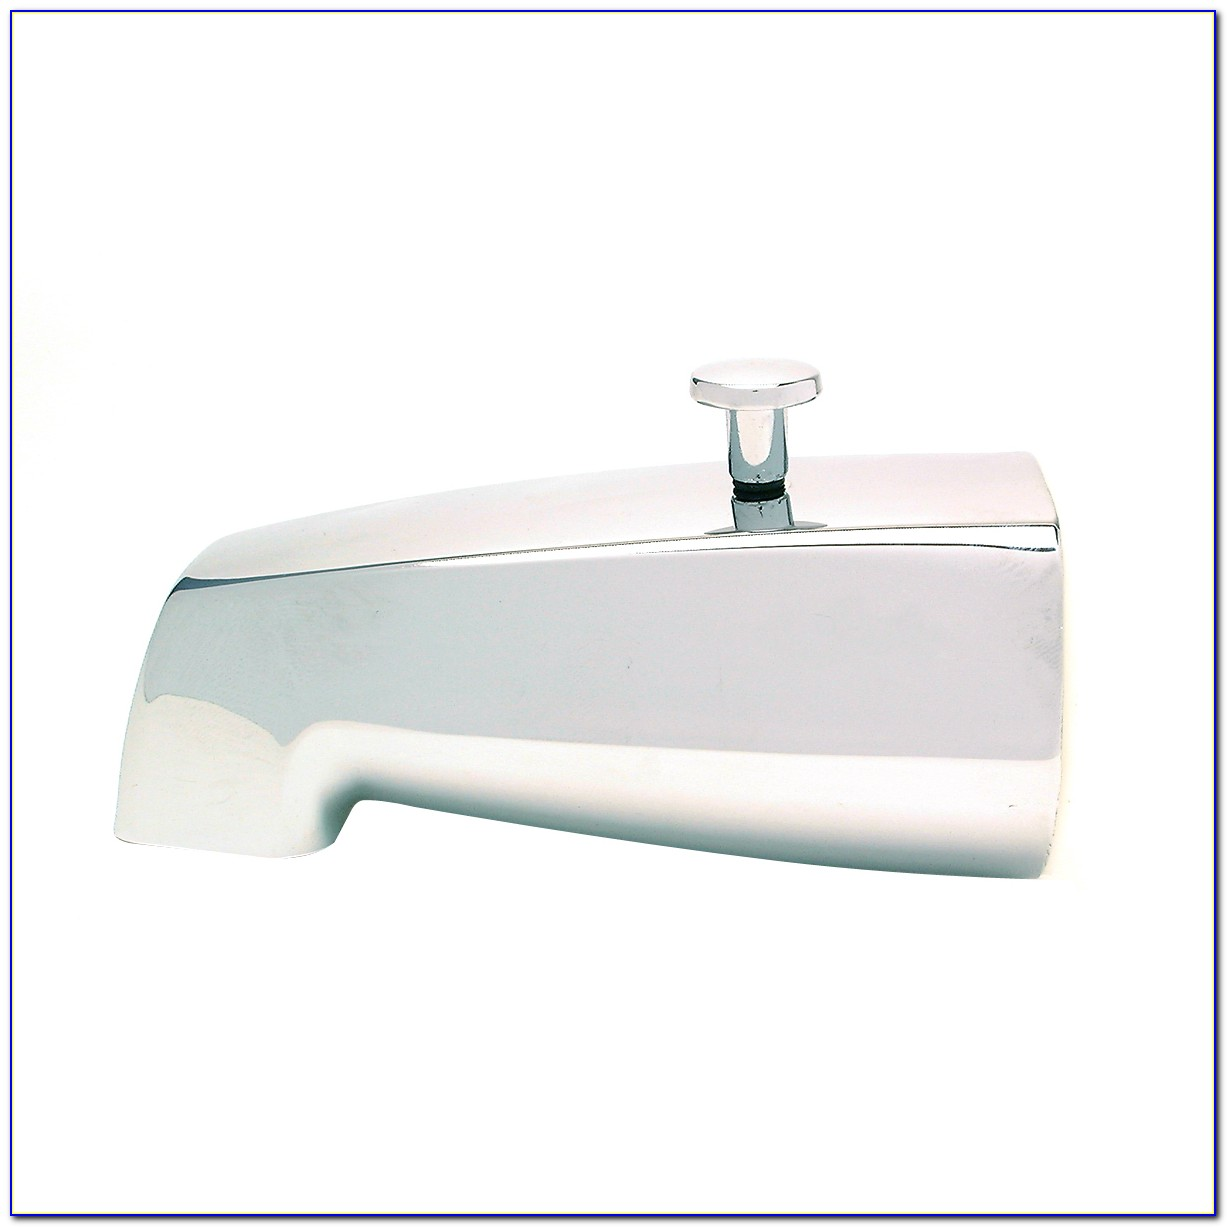 Bathtub Faucet Diverter